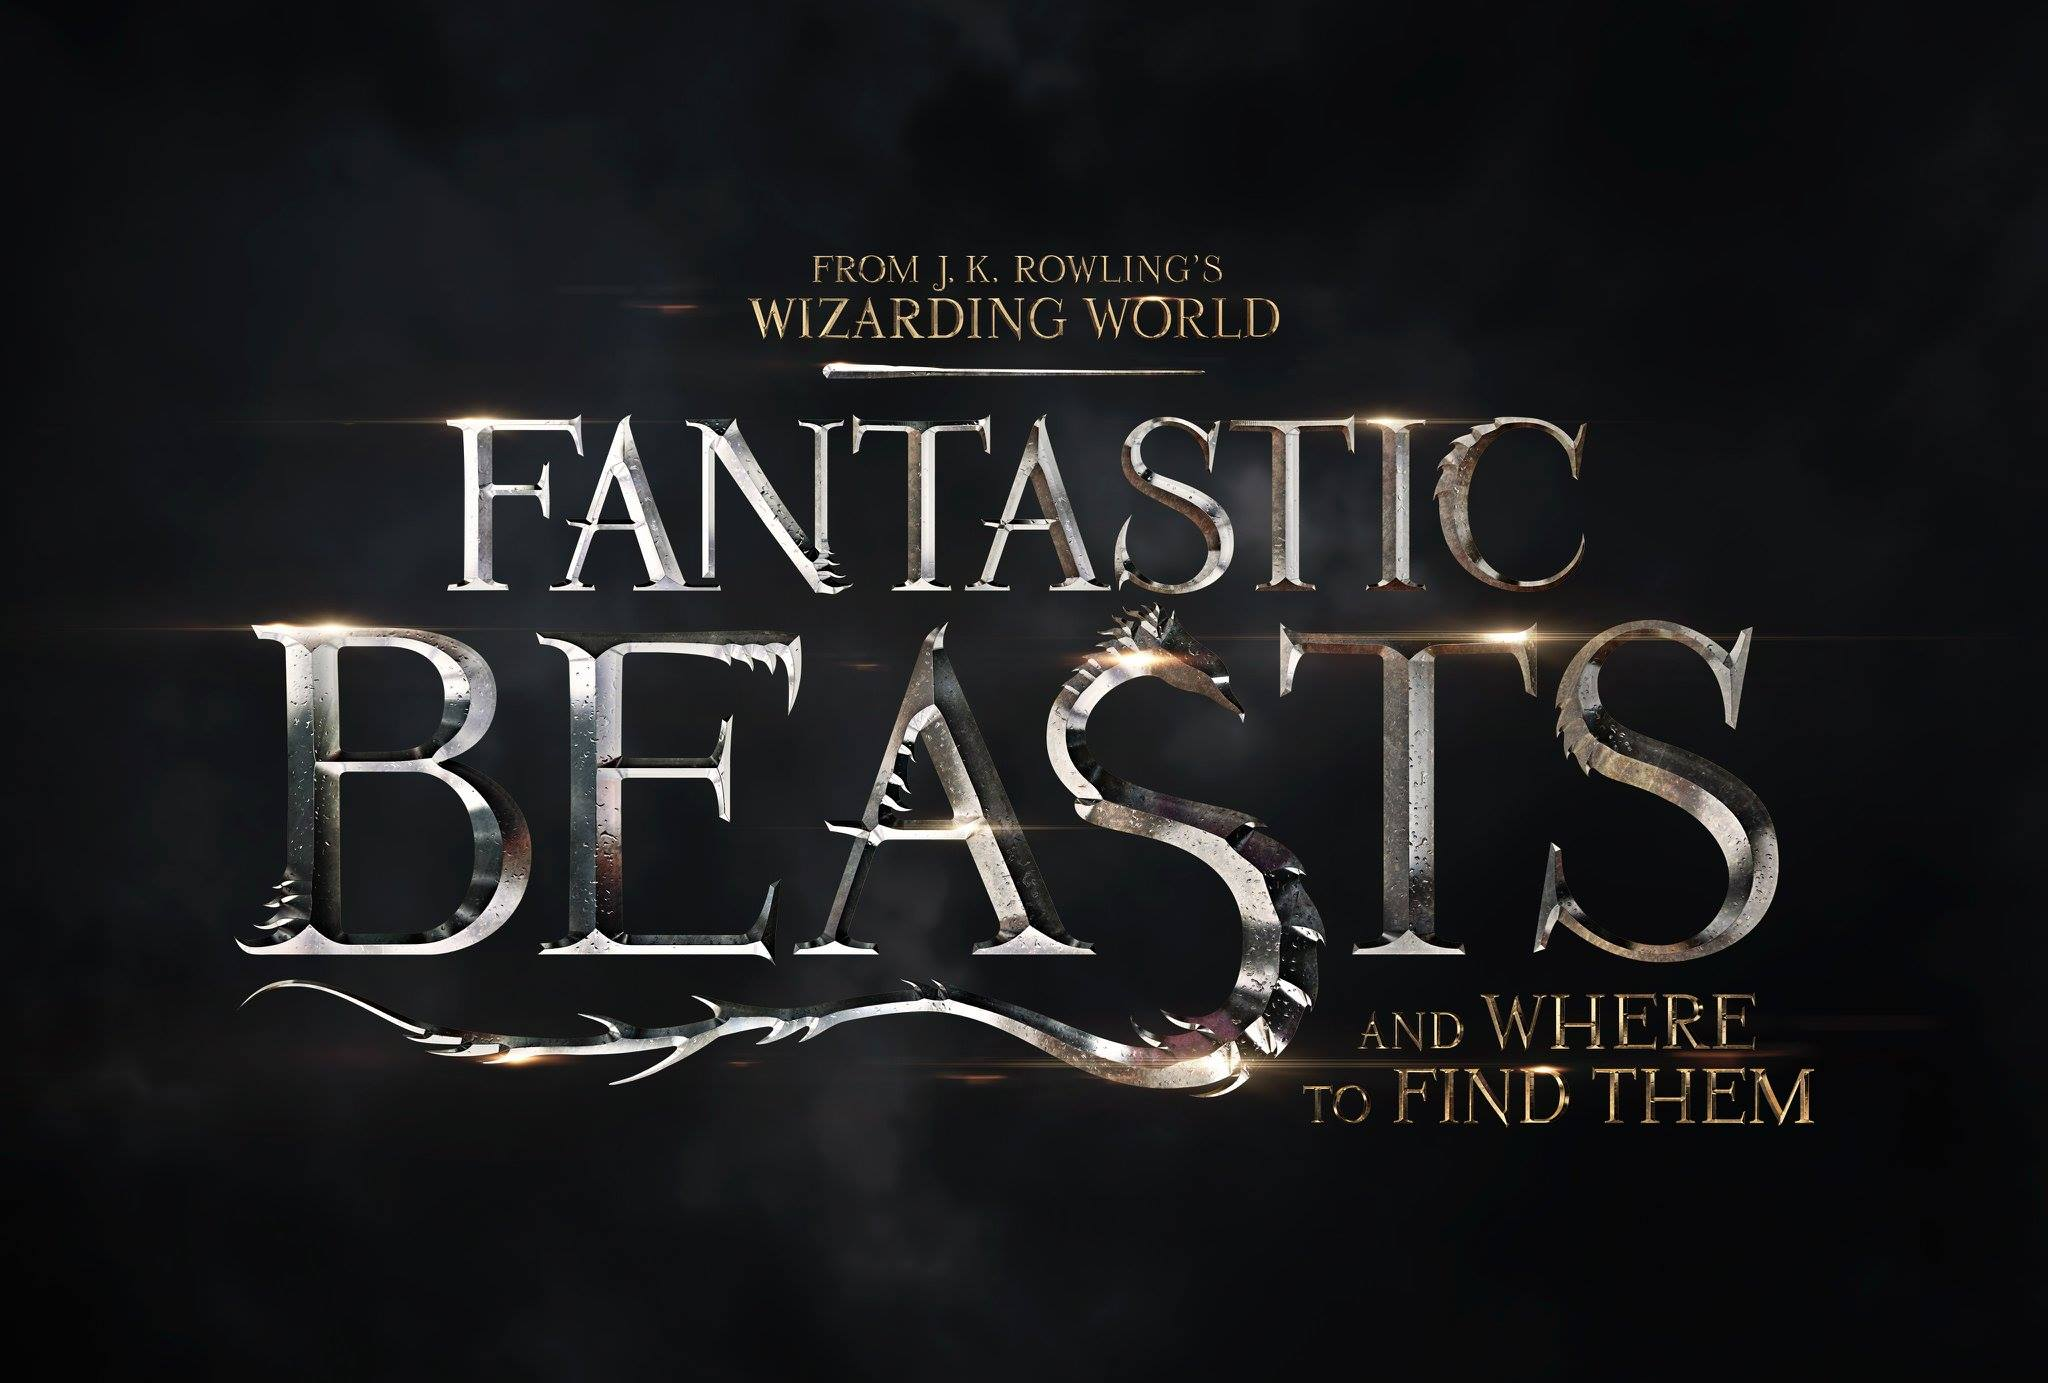 Fantastic Beasts and Where to Find Them - Warner Bros.